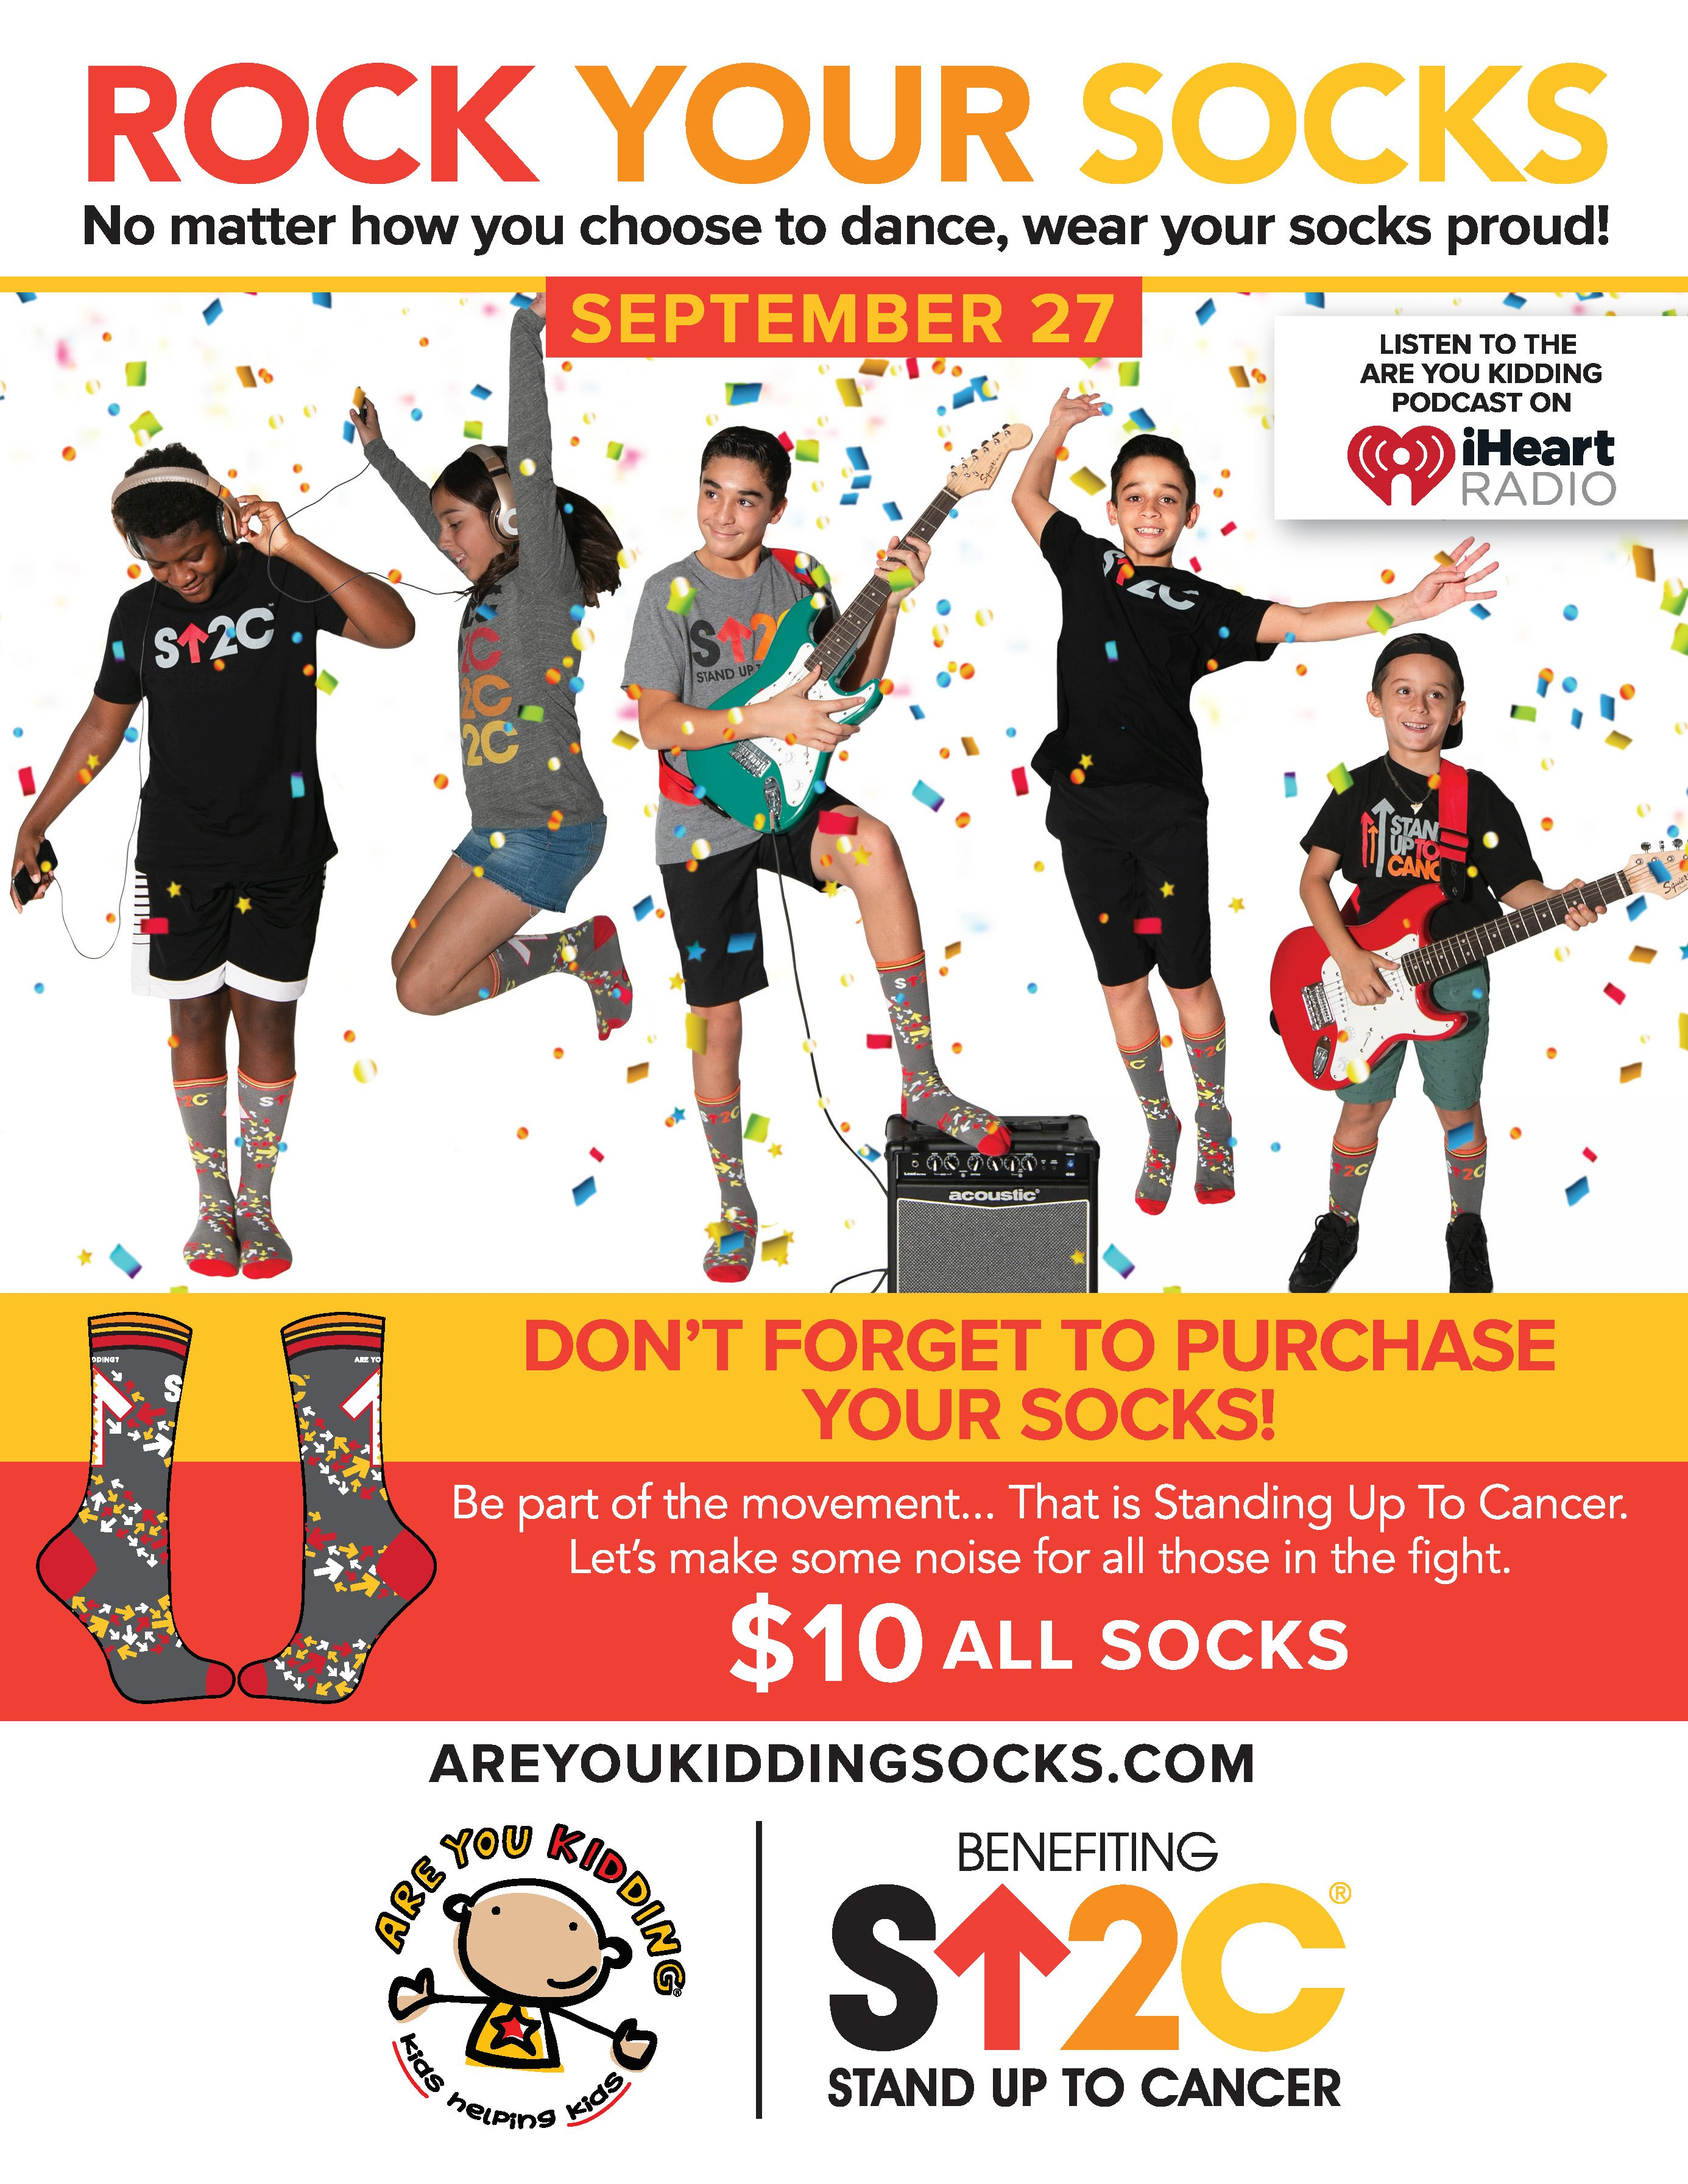 Stand Up To Cancer and Rock Your Socks